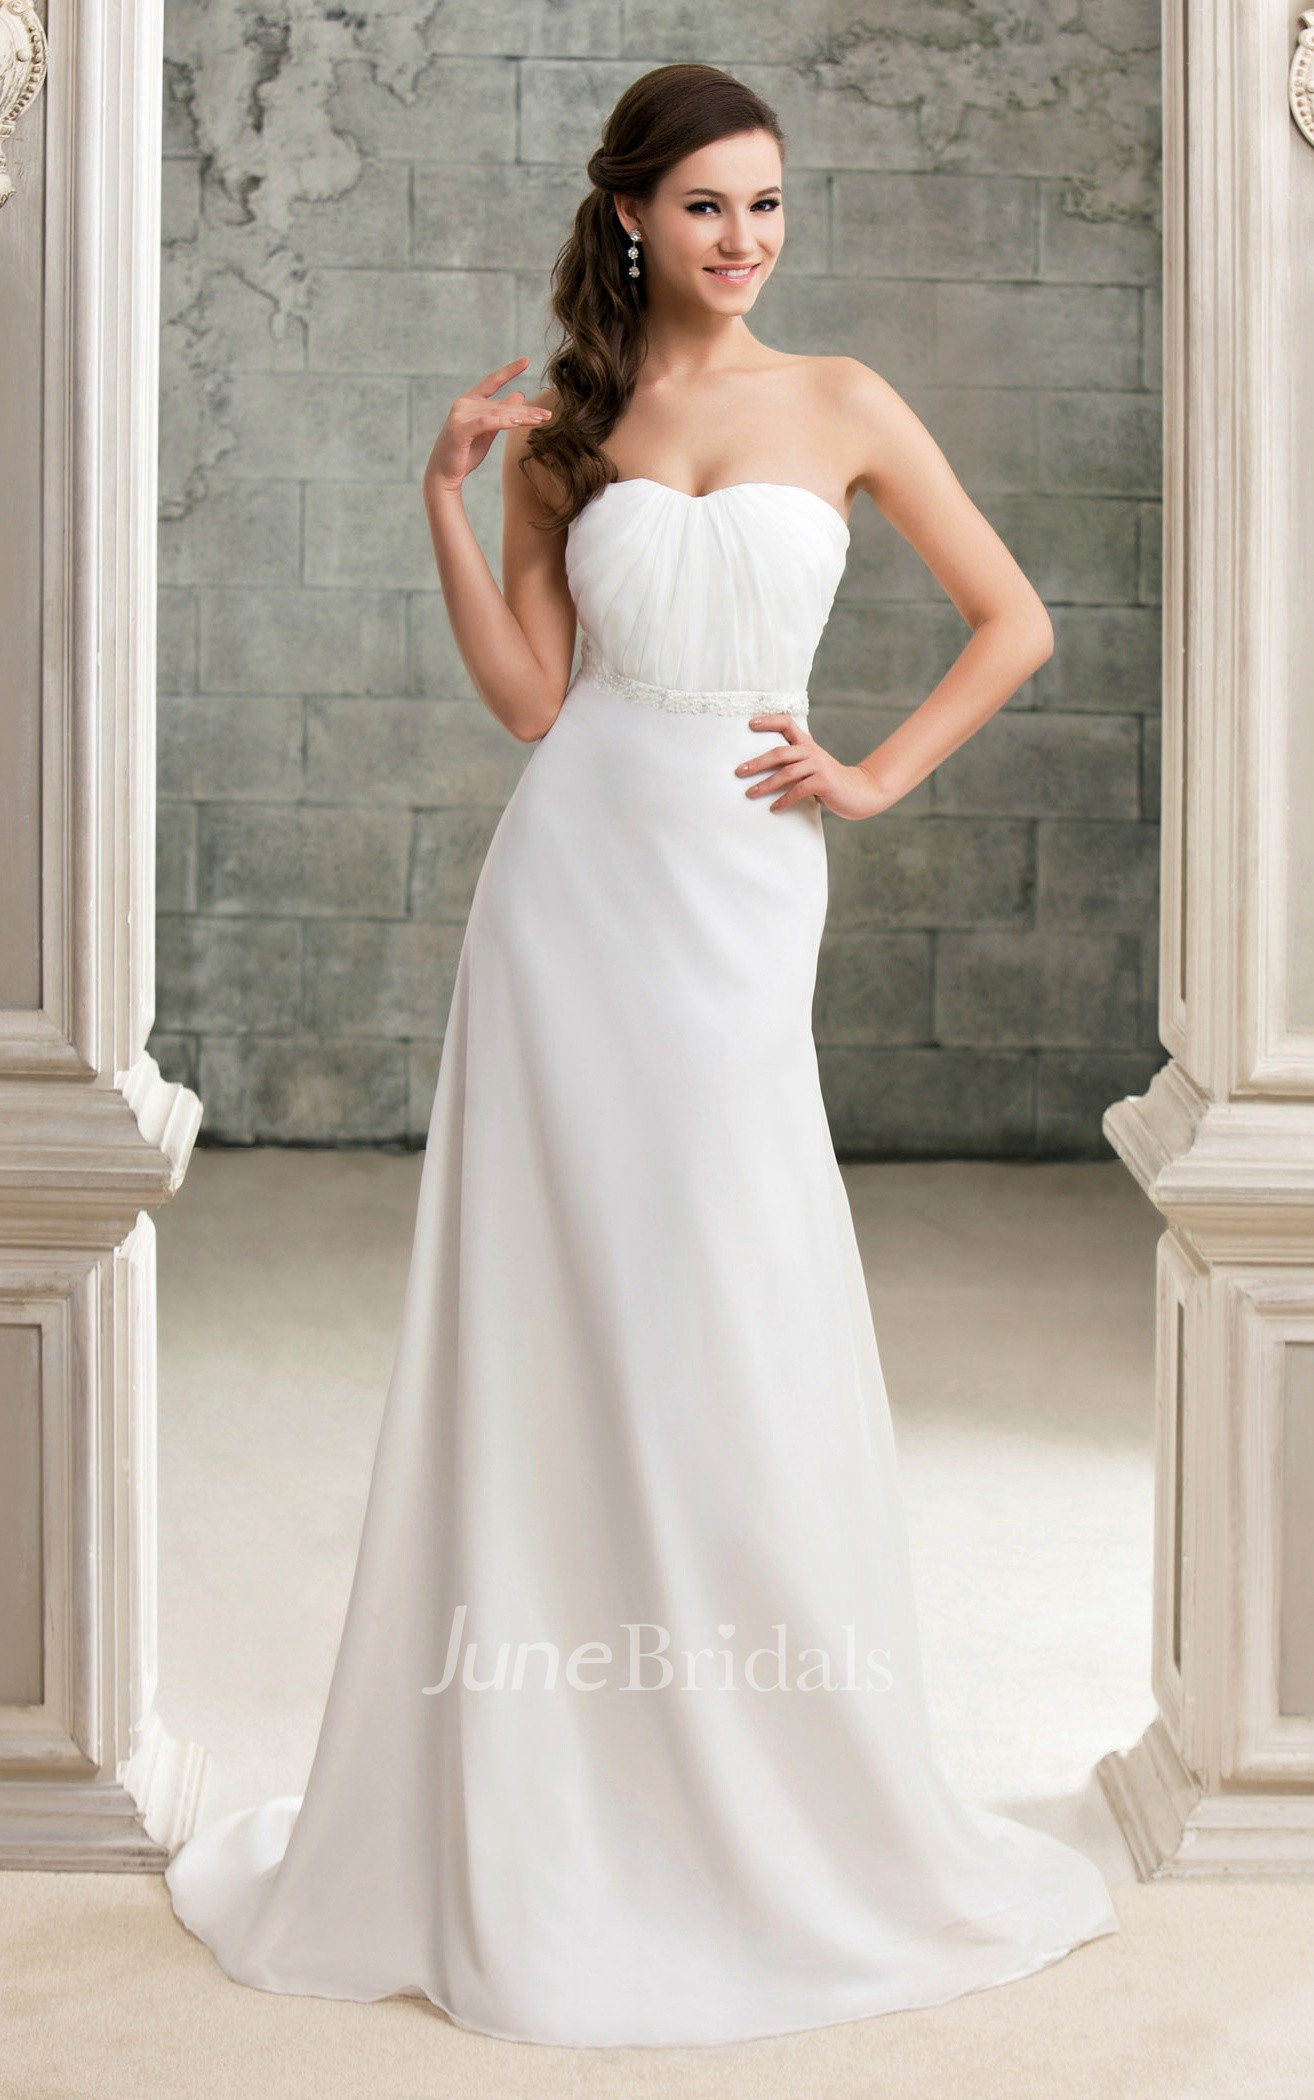 Strapless Ruched Floor Length Dress With Beaded Waist And